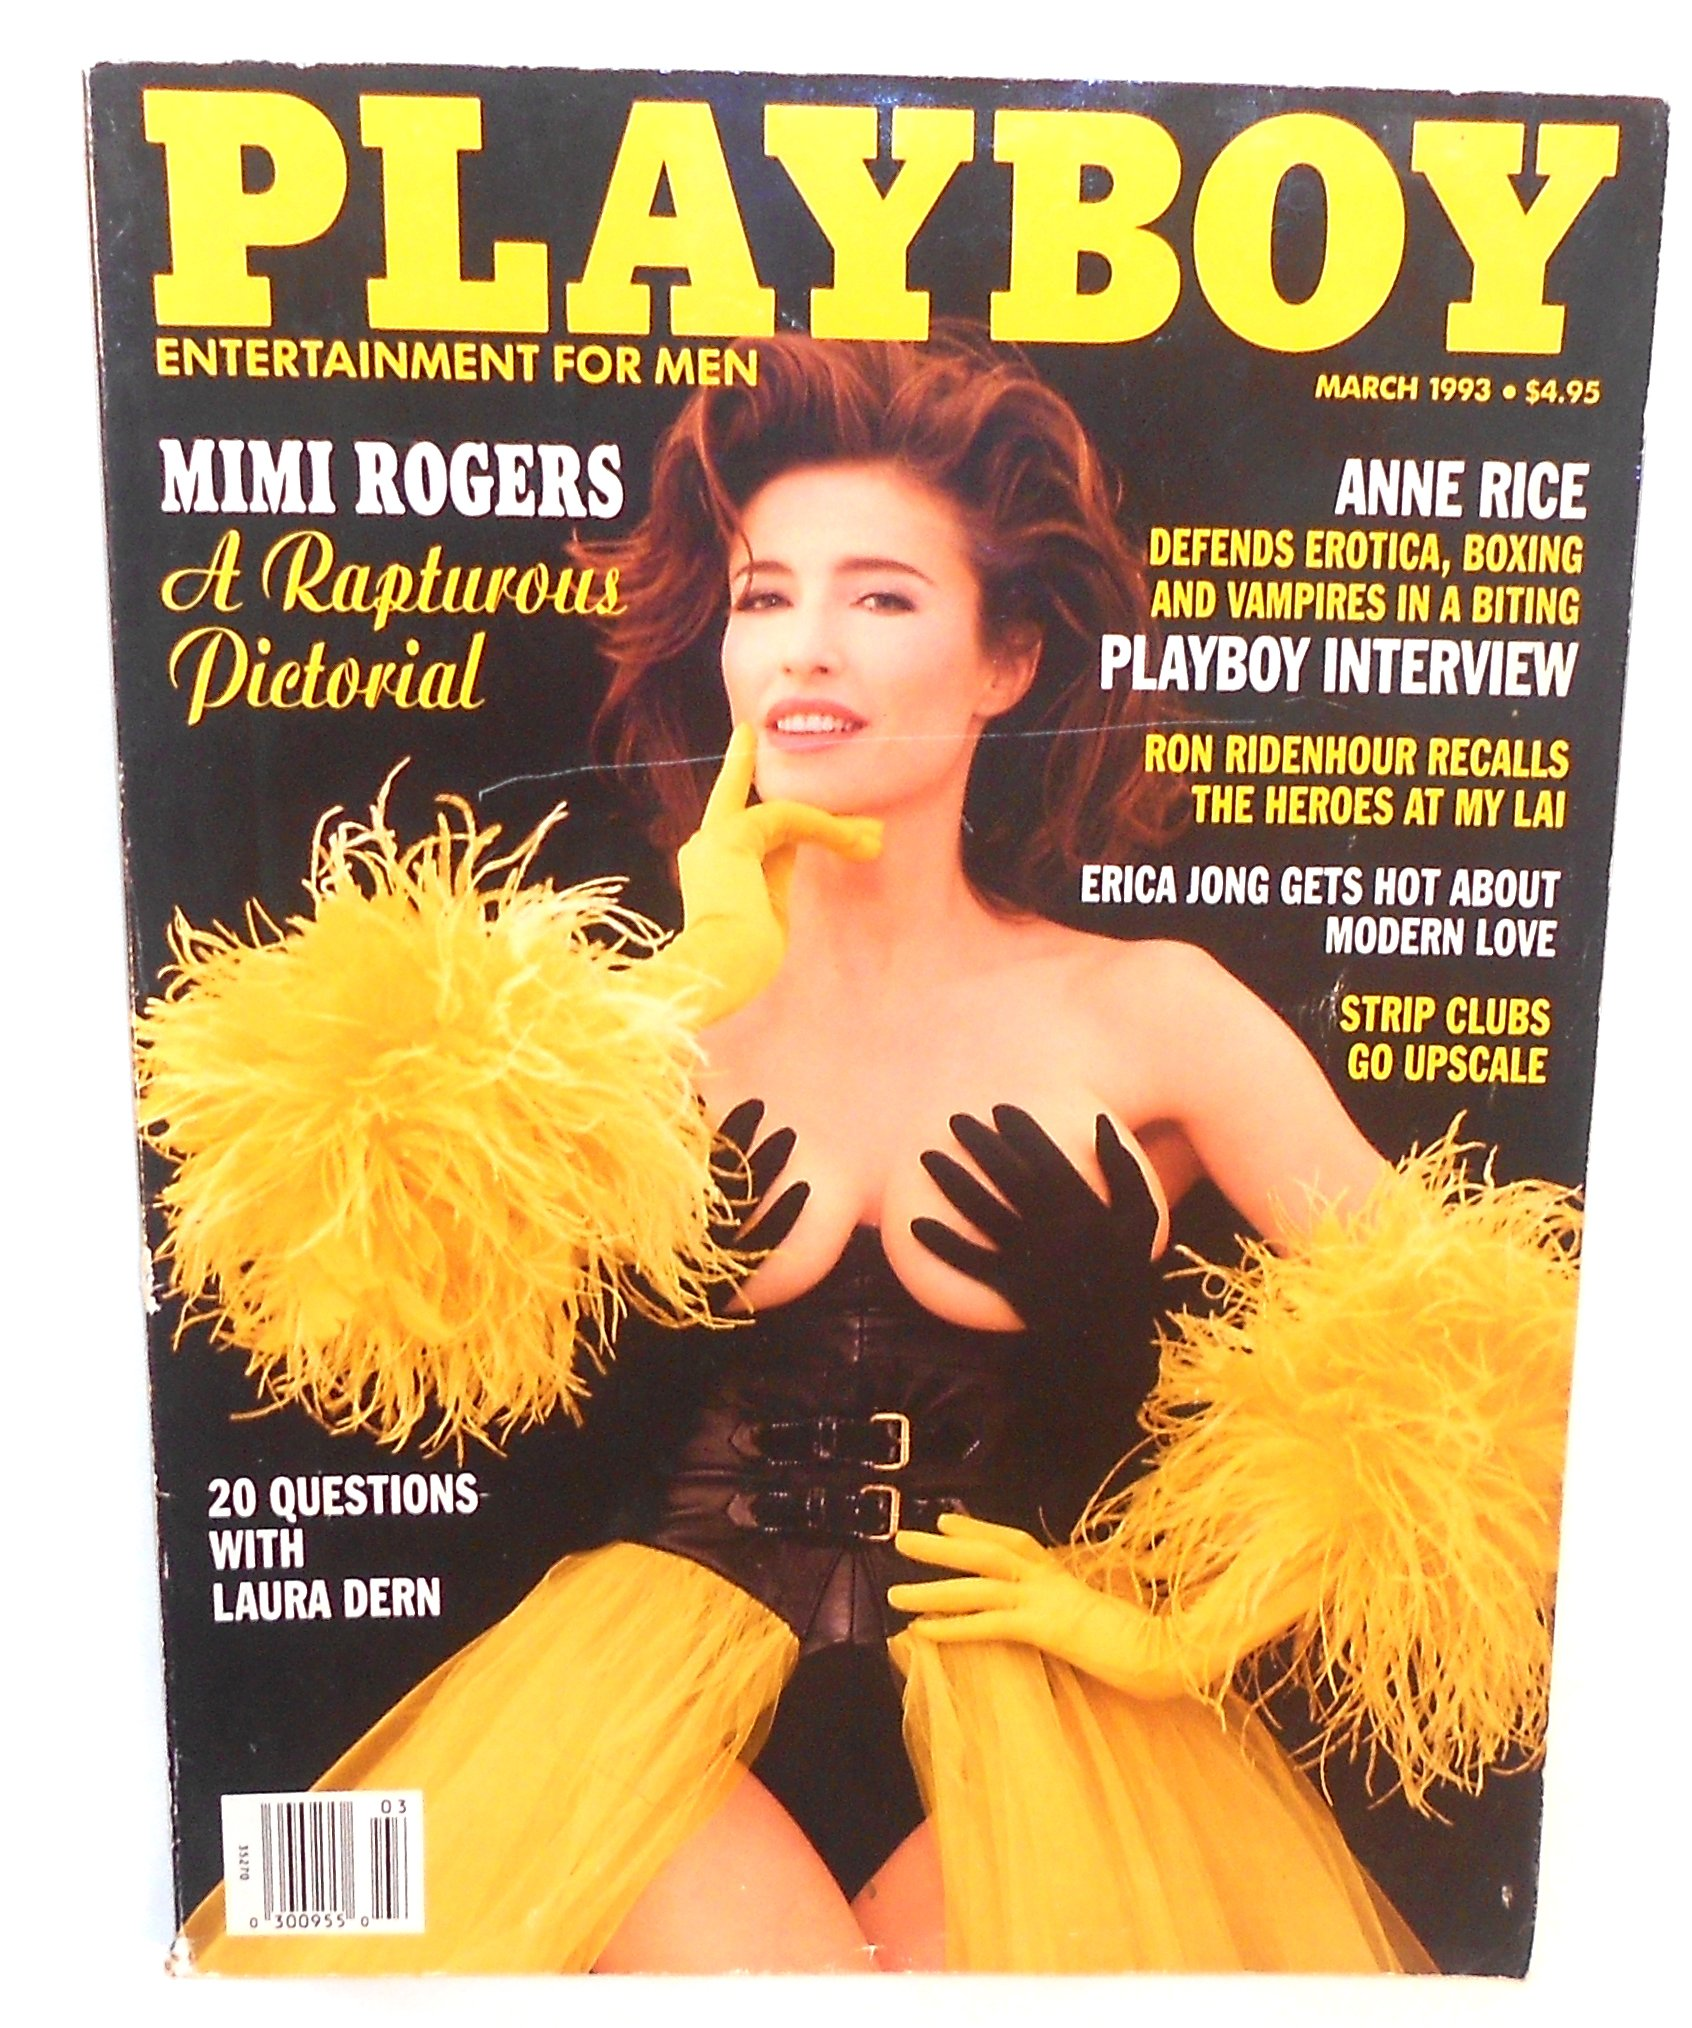 Playboy article anal sex 9